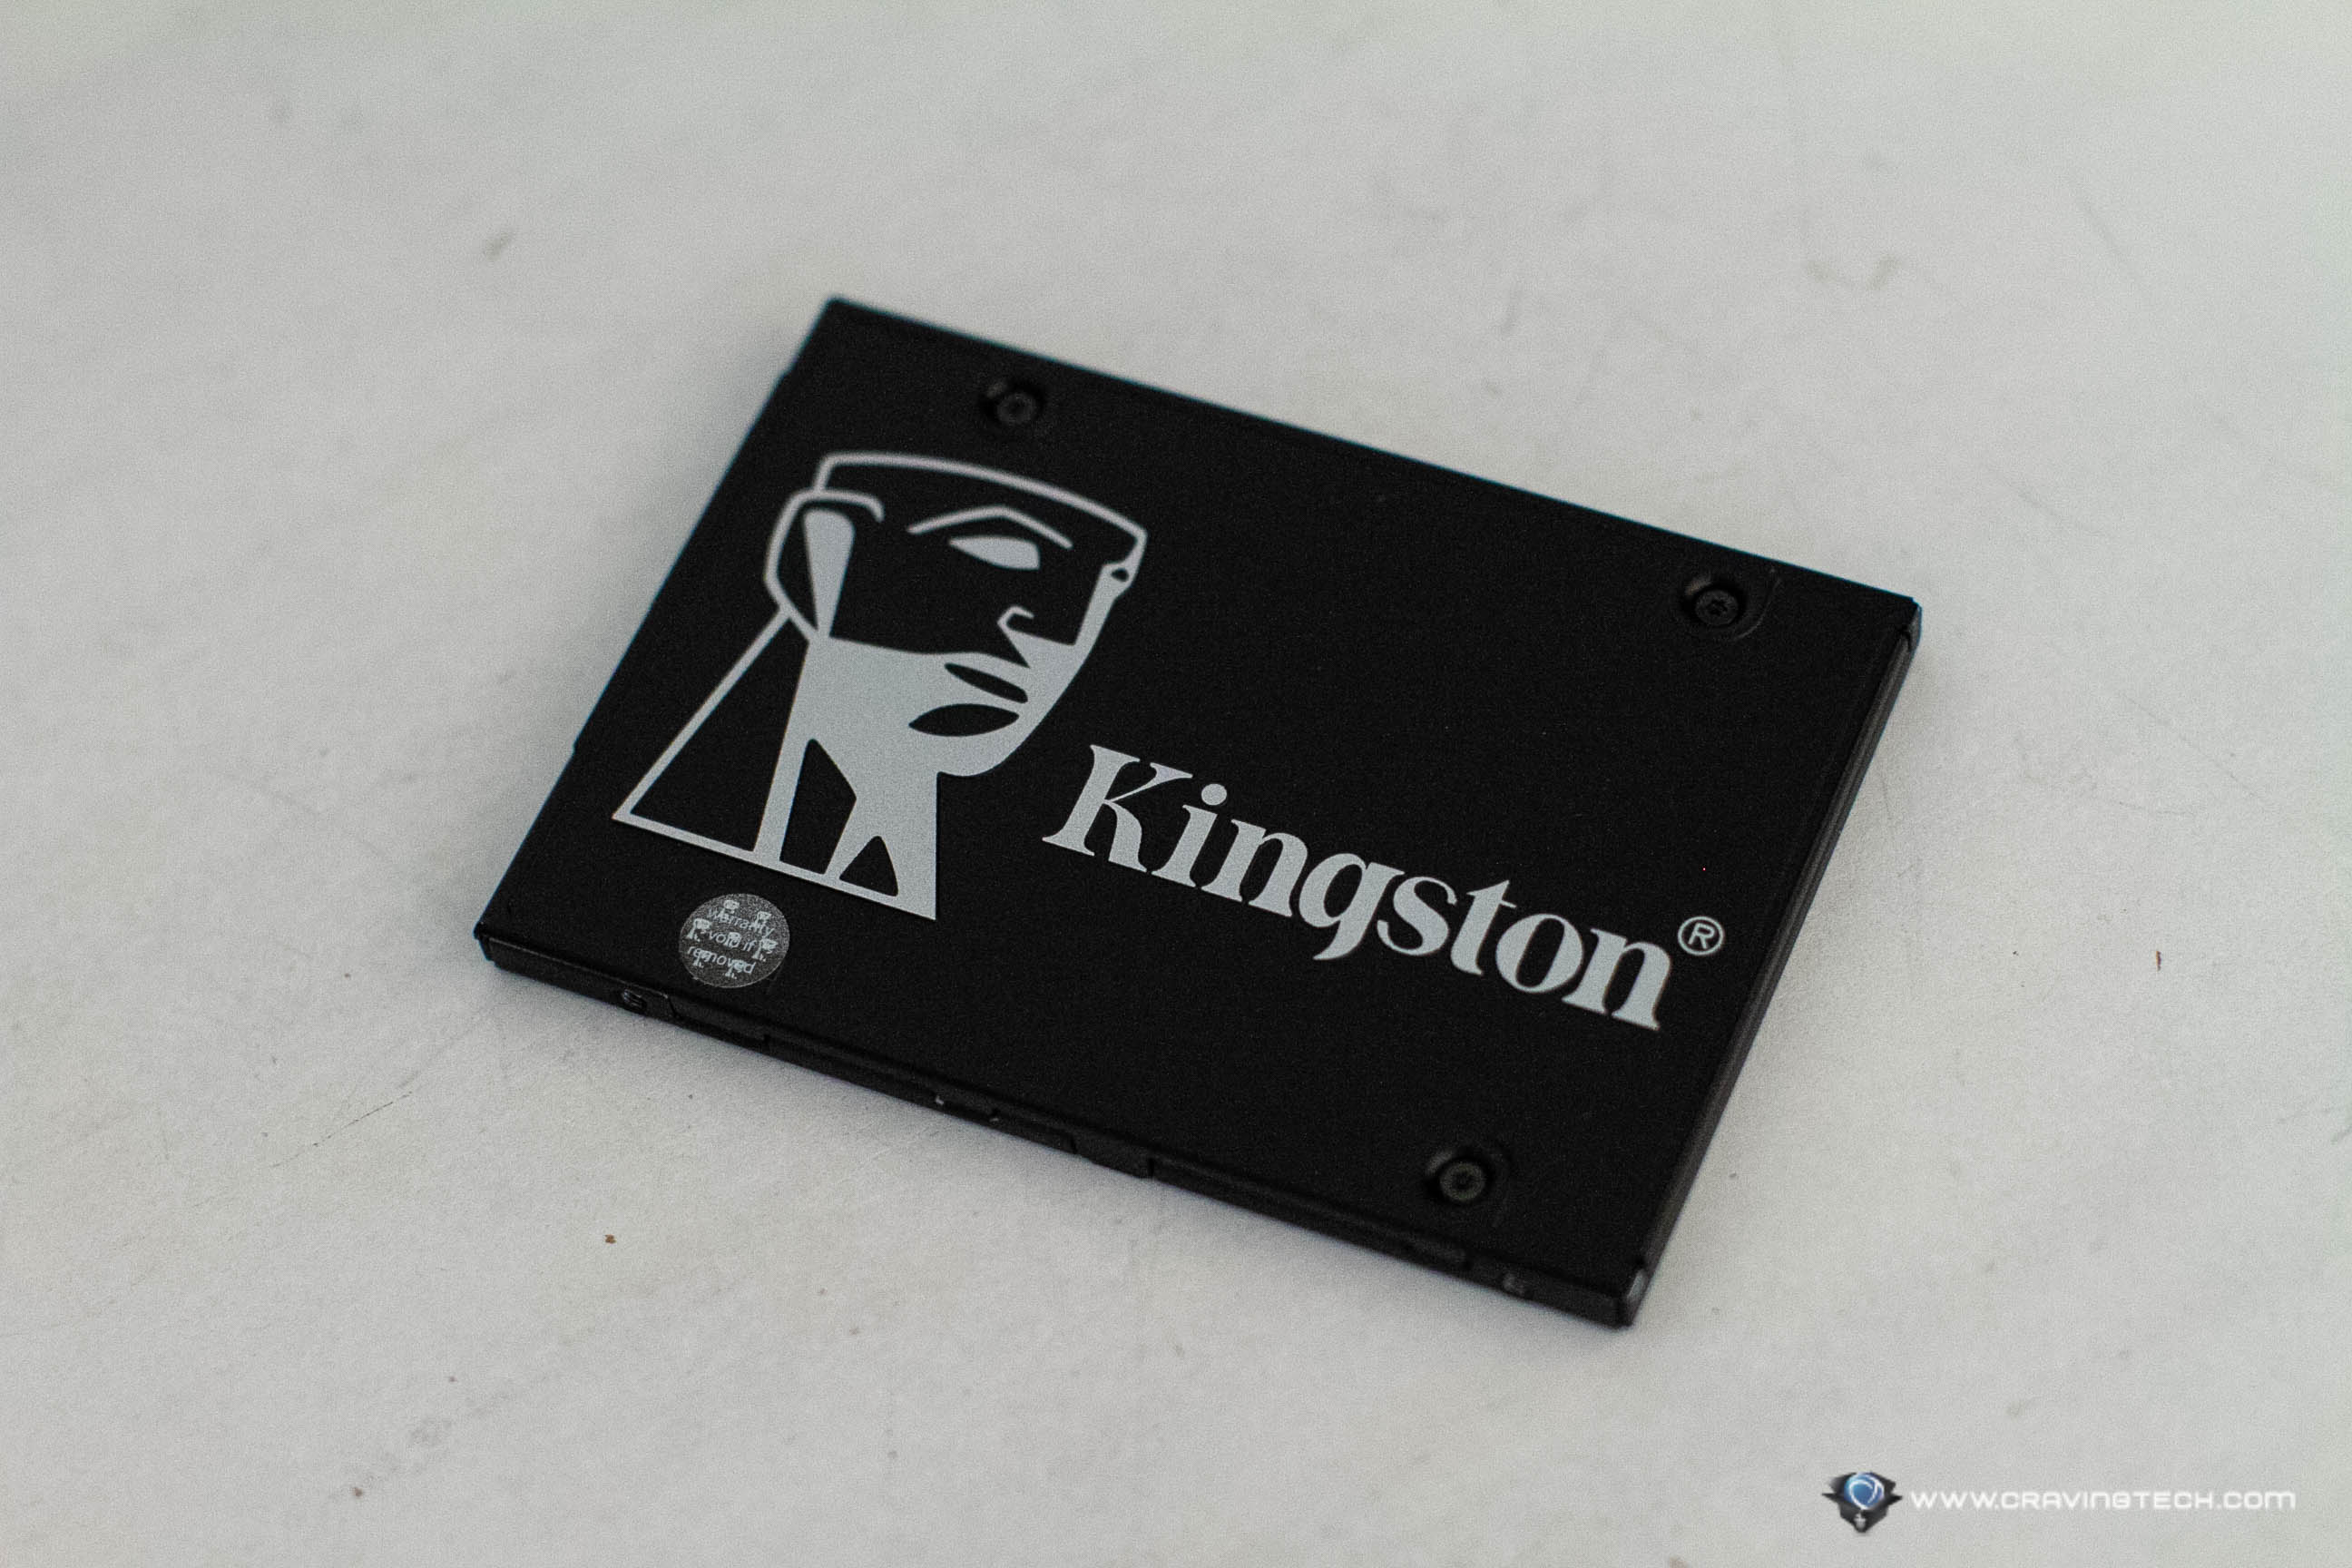 Hardware-based self-encrypting SSD drive – Kingston KC600 SSD Review